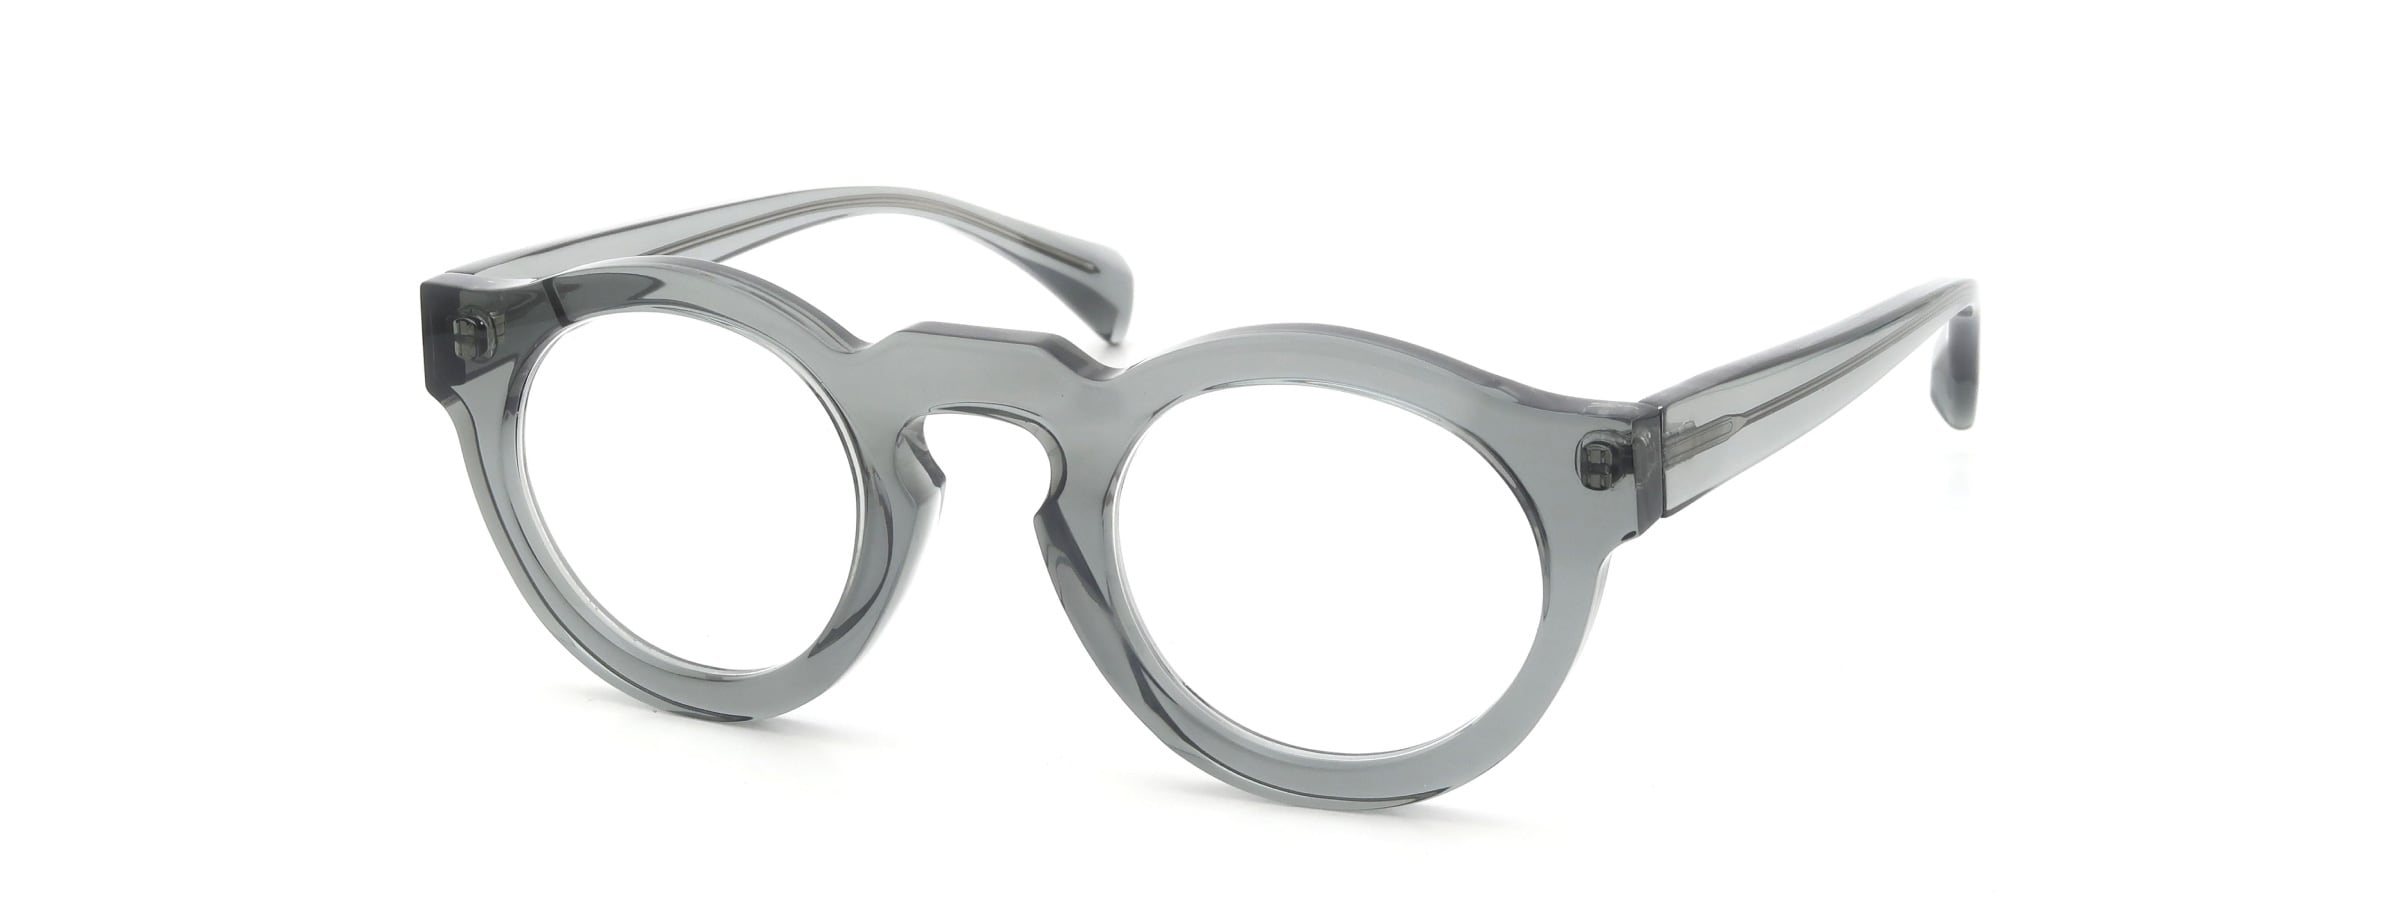 Jacques Durand PAQUES 106 col.151 Glossy-Grey全体像